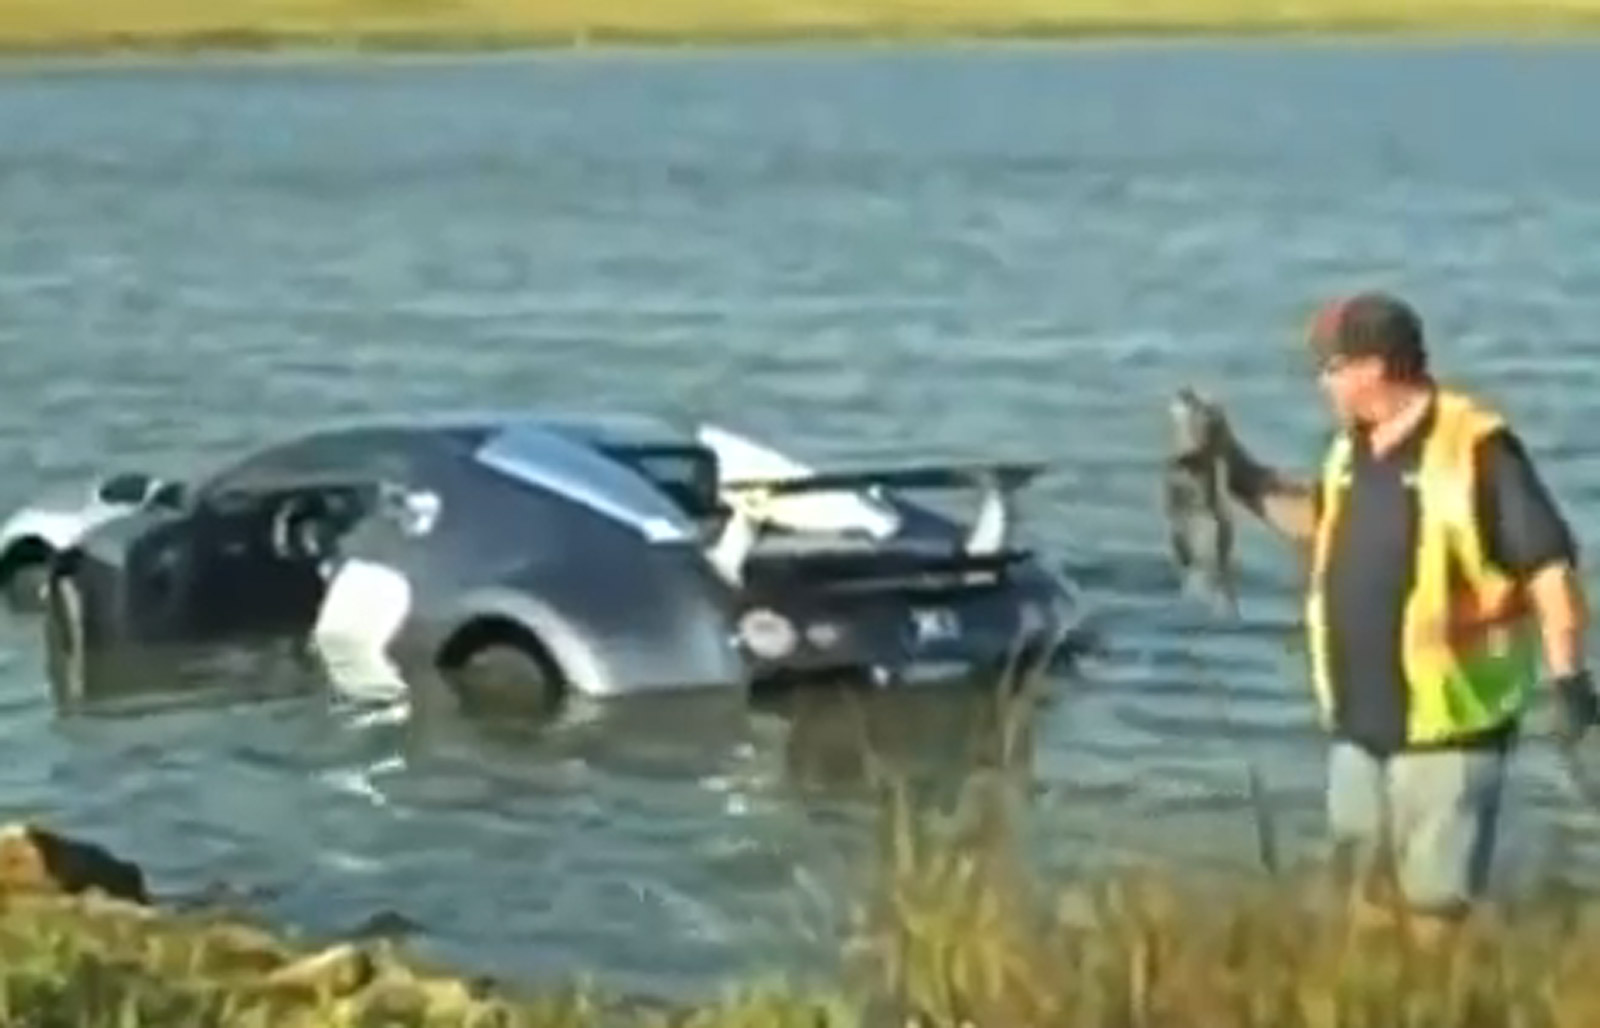 Bugatti veyron crash in lake - photo#1